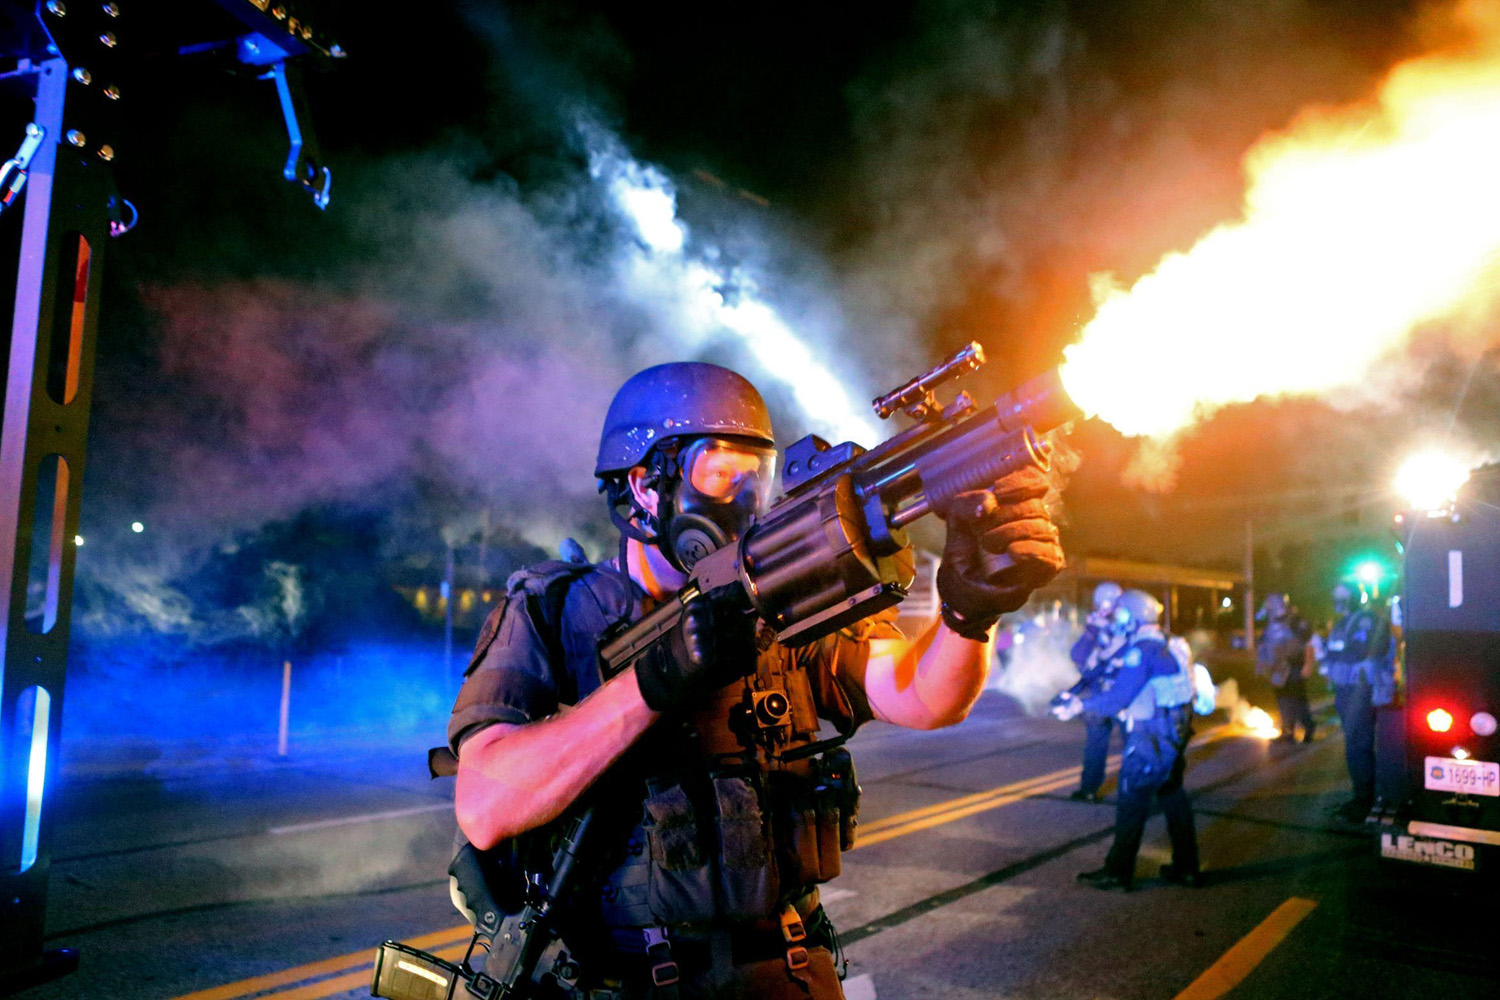 Aug. 18, 2014. Police fire tear gas in the direction of where bottles were thrown from crowds gathered near the QuikTrip on W. Florissant Avenue. Protests and clashes erupted between police and protesters in a Missouri city where racial tensions have boiled over since Ferguson police officer Darren Wilson fatally shot unarmed Black teen Michael Brown on Aug. 9.